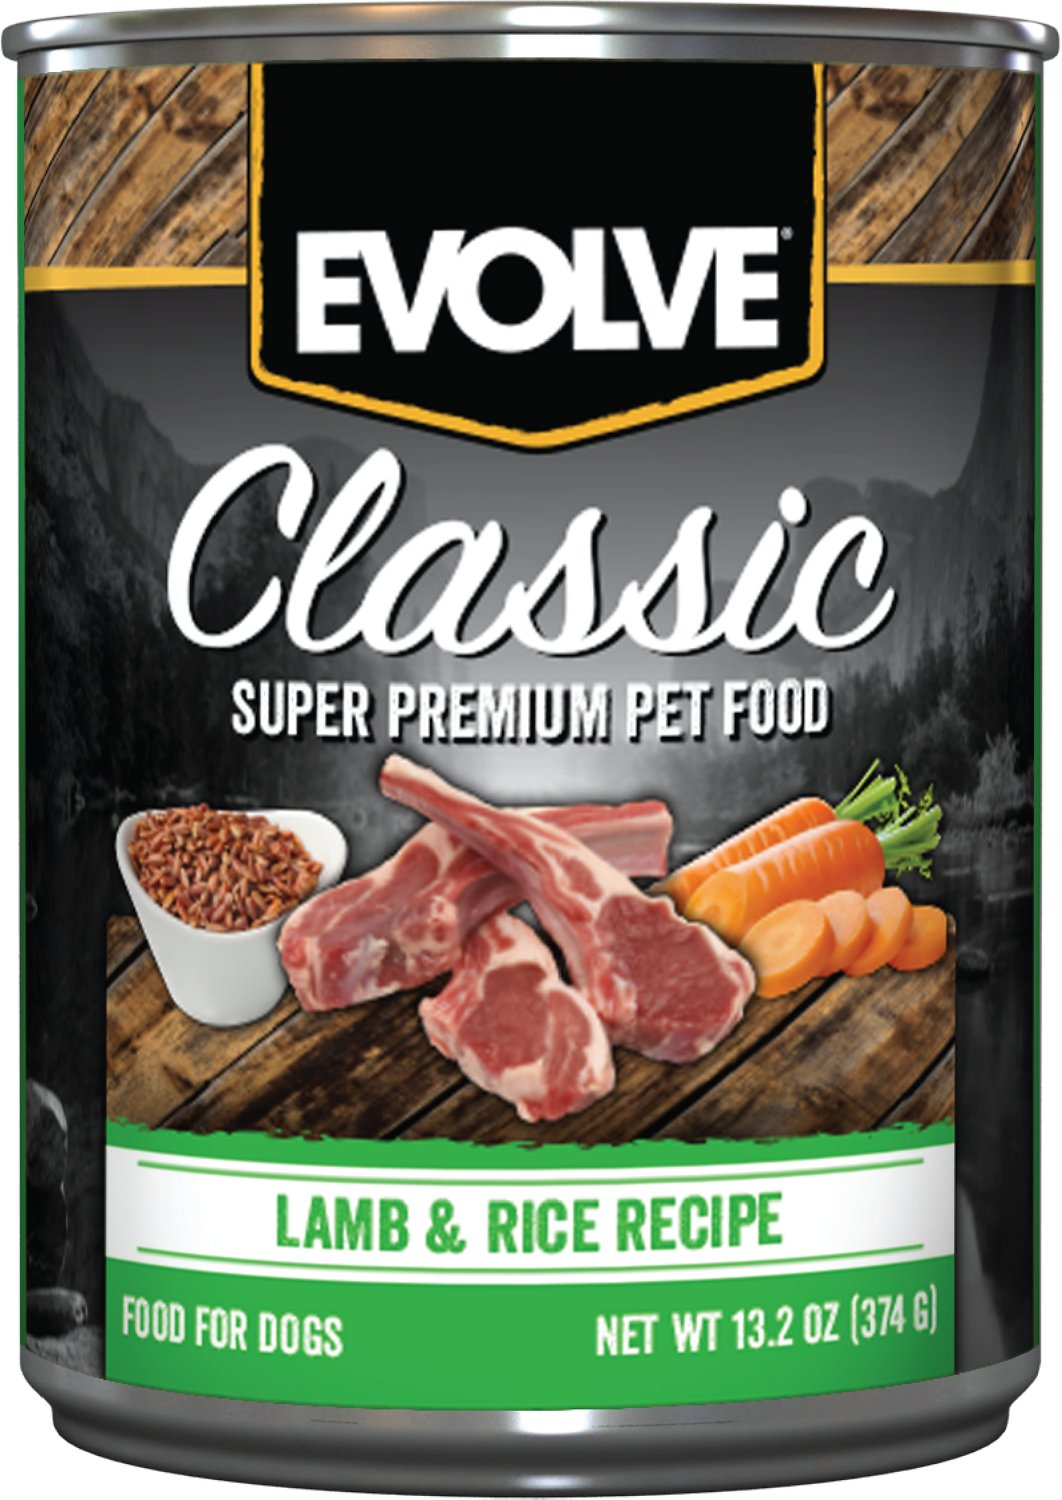 Evolve Canned Dog Food